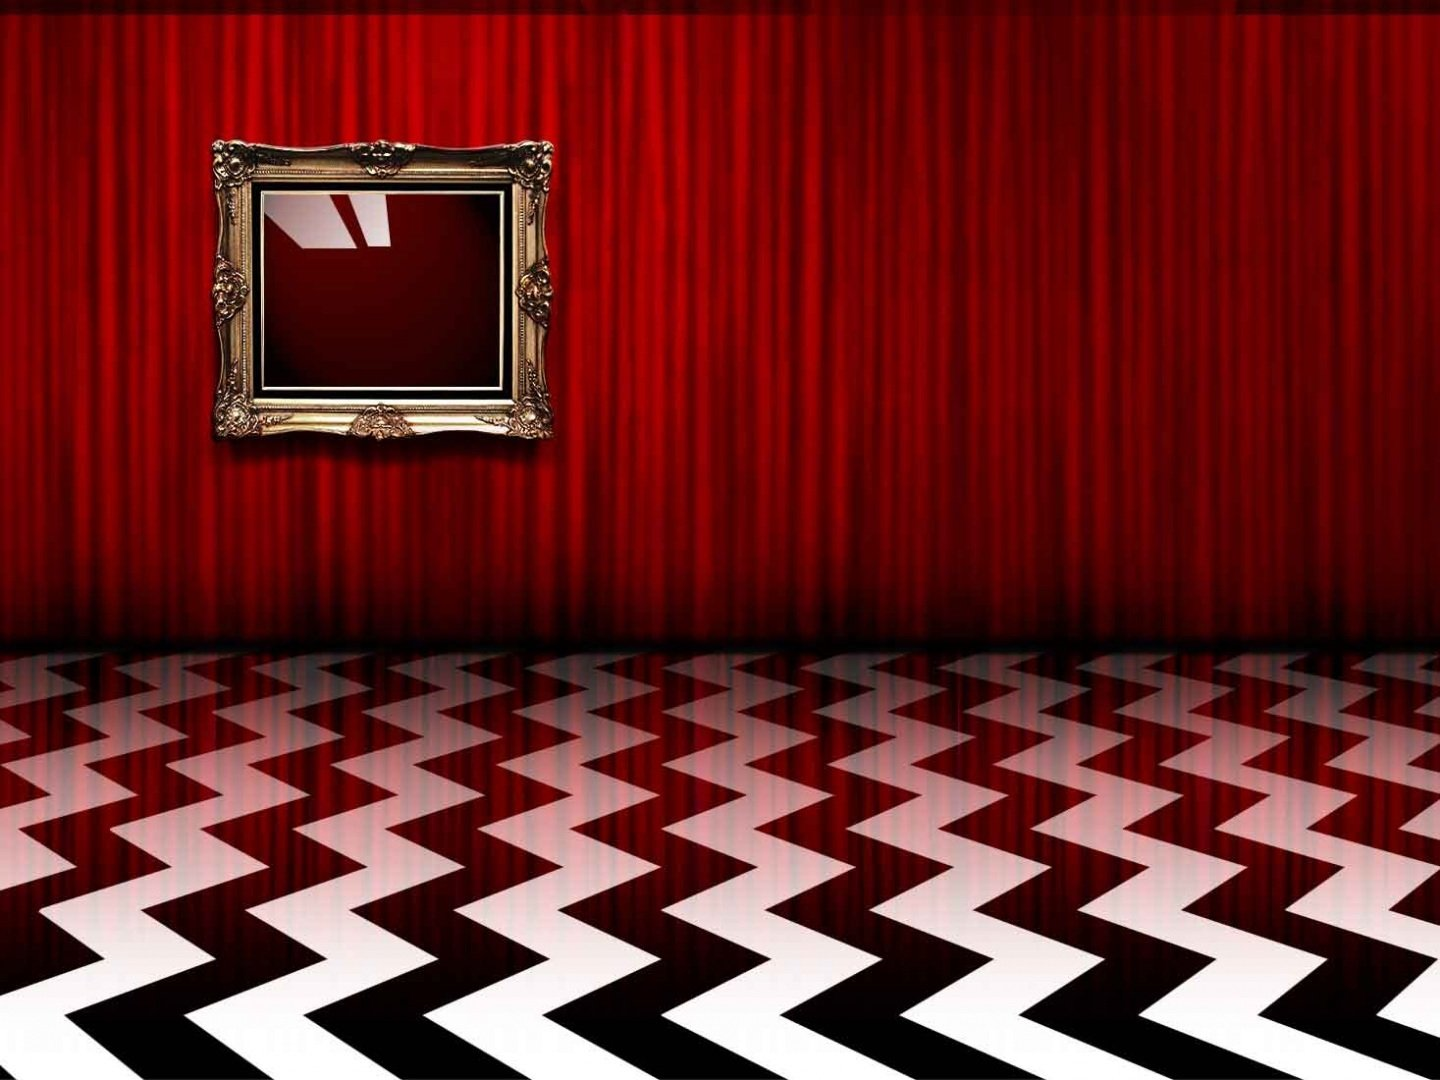 Background David Lynch Twin Peaks Photo Shared By Harlie688 Fans 1440x1080